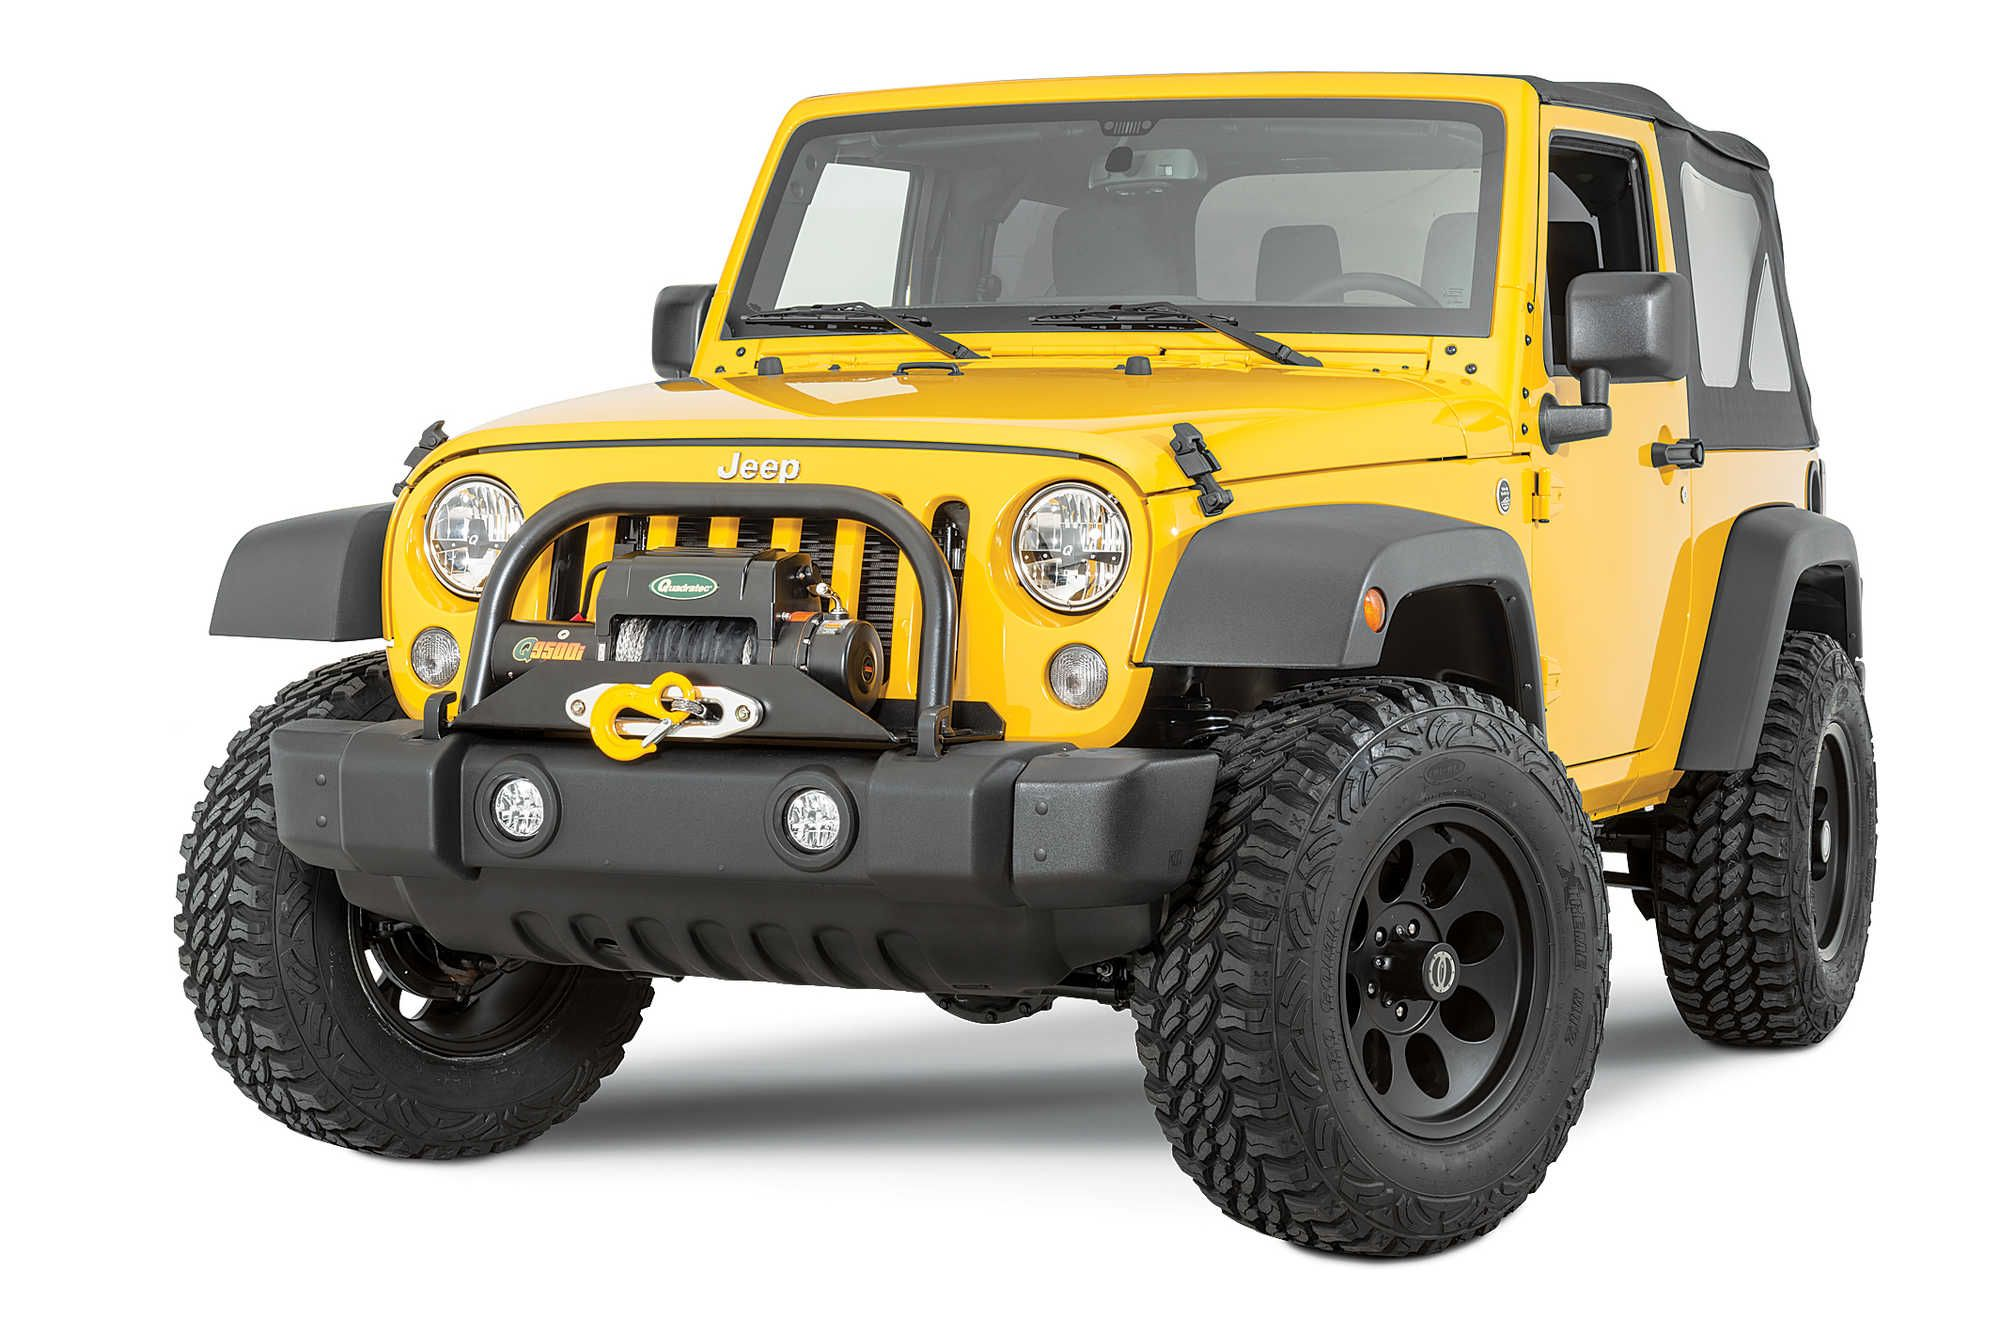 Vertically driven products 31555 stock bumper full width end cap conversion kit for jeep wrangler jk